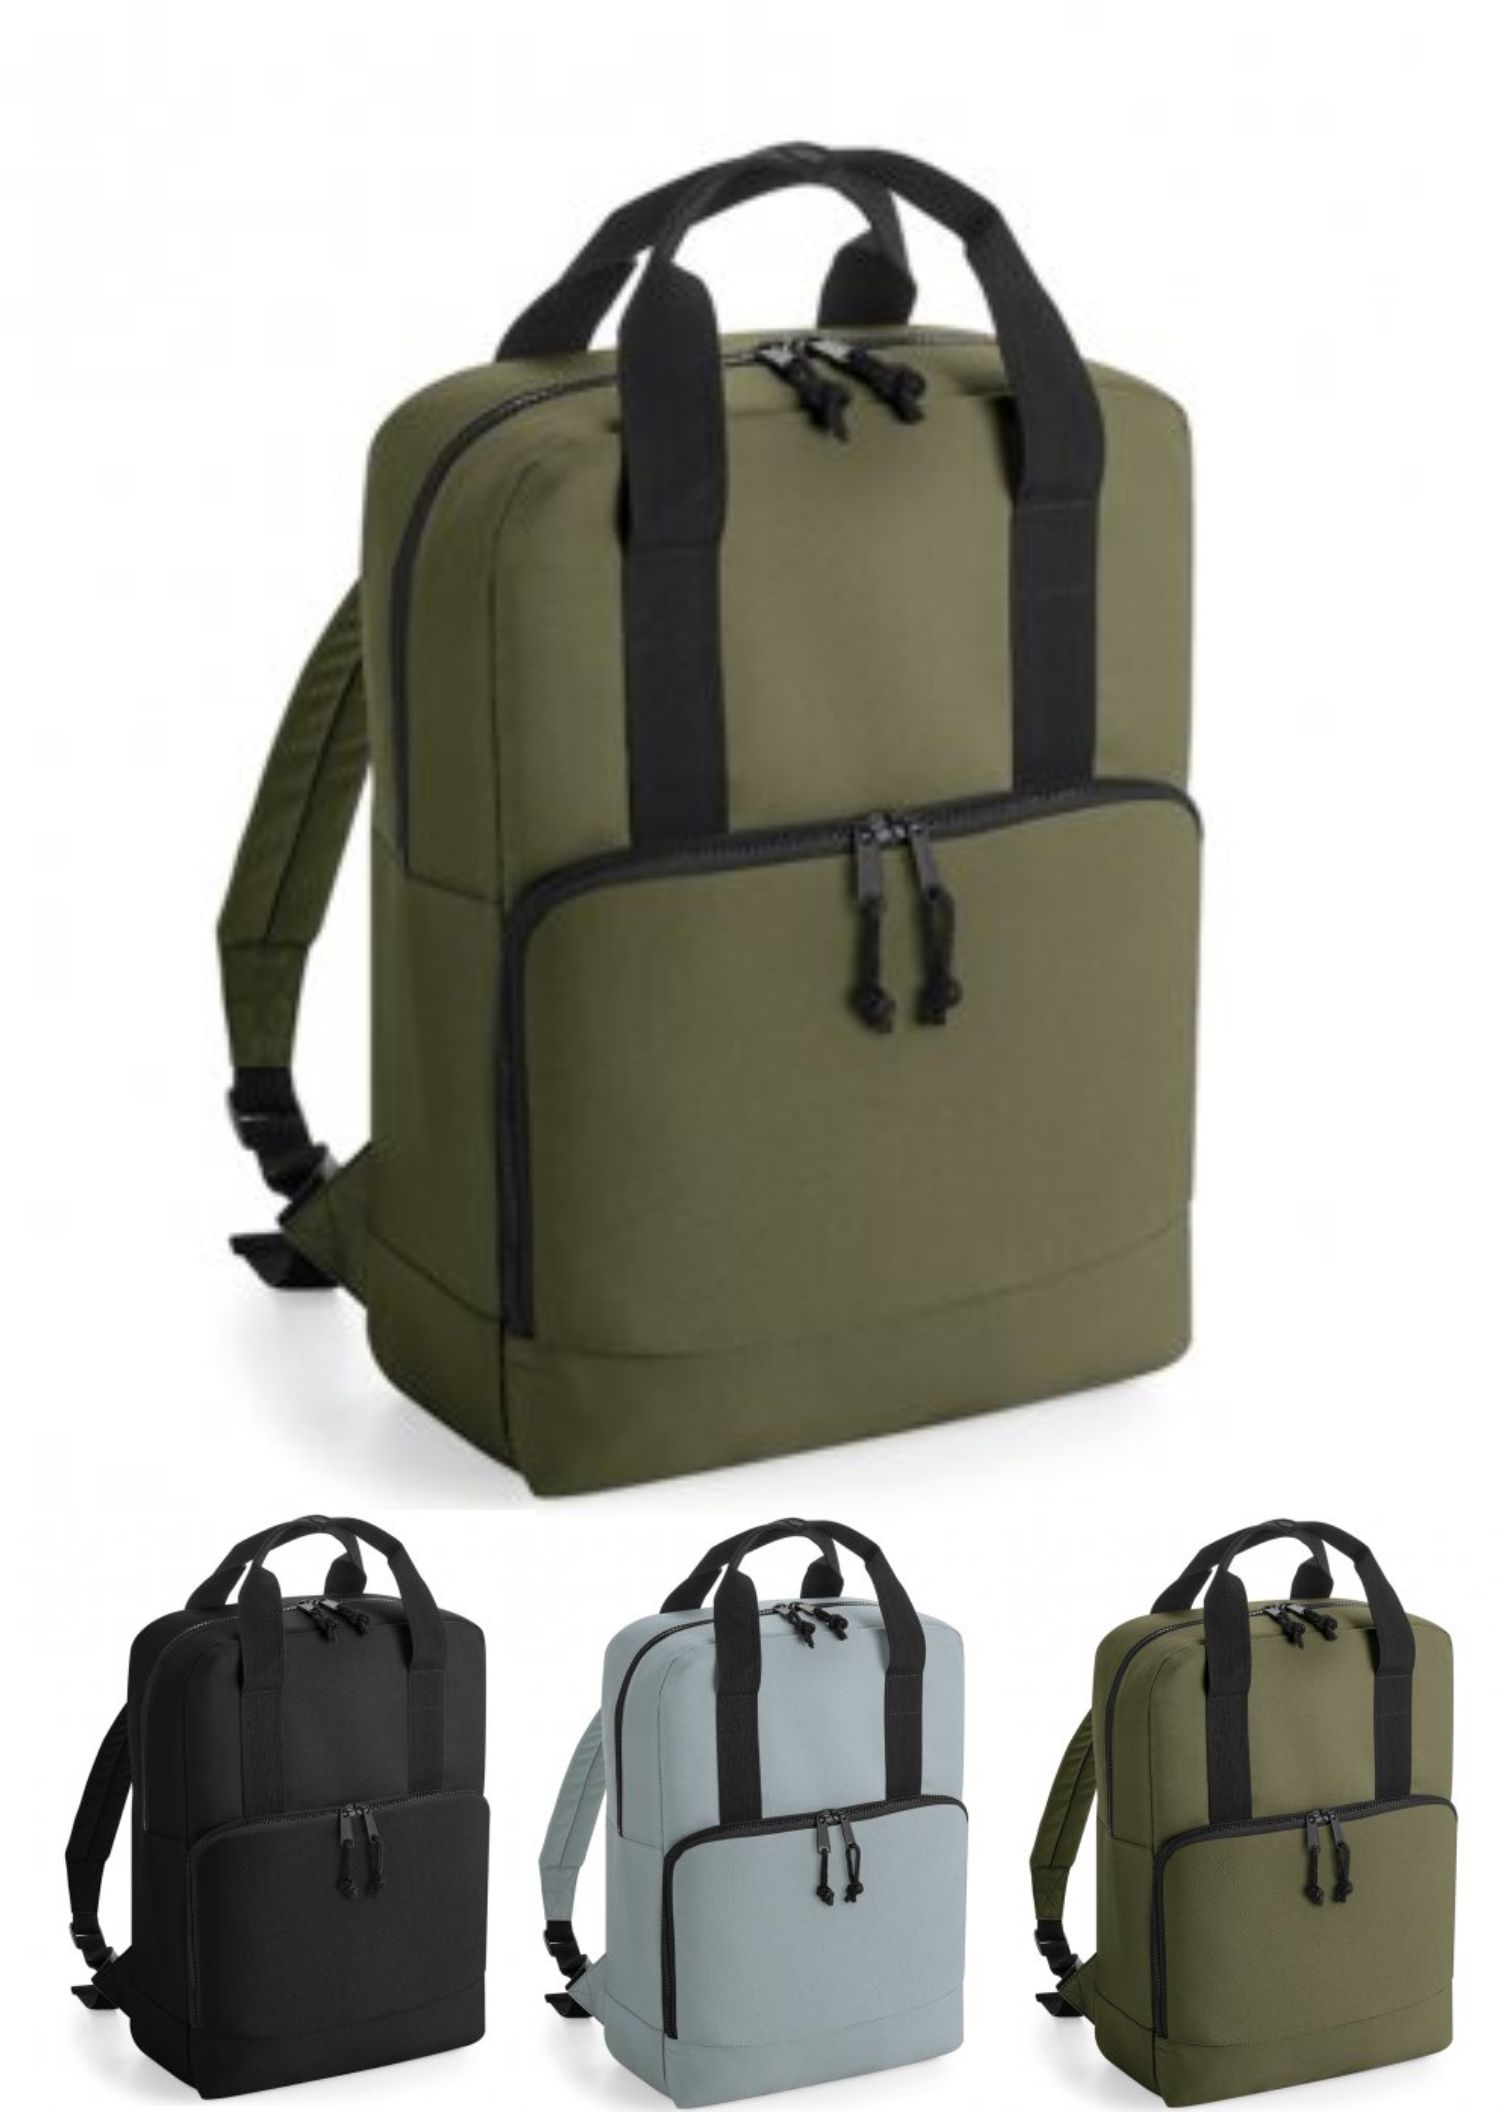 Bagbase BG287 Recycled Cooler Backpack